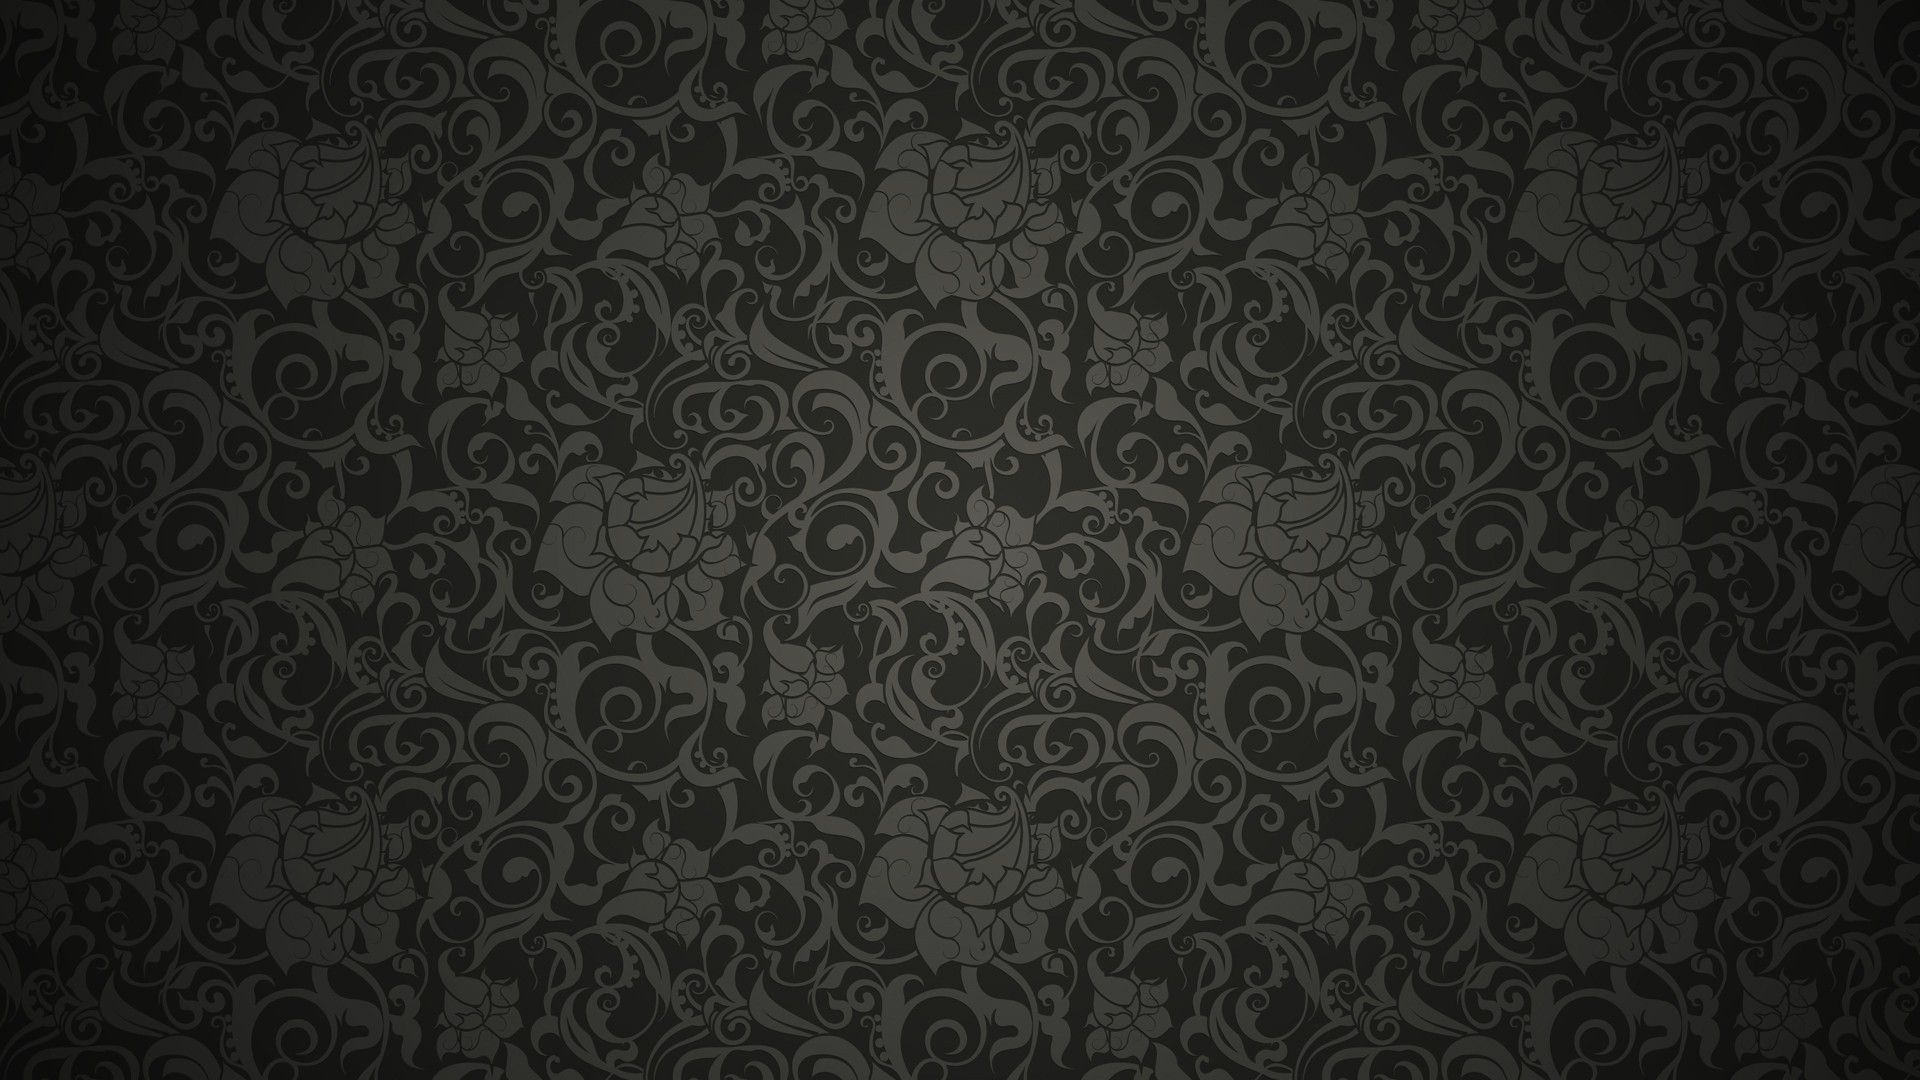 Download Wallpaper High Quality Pattern - b08a44ea4a9a755d2cfe0a007985db10  Snapshot_223488.jpg